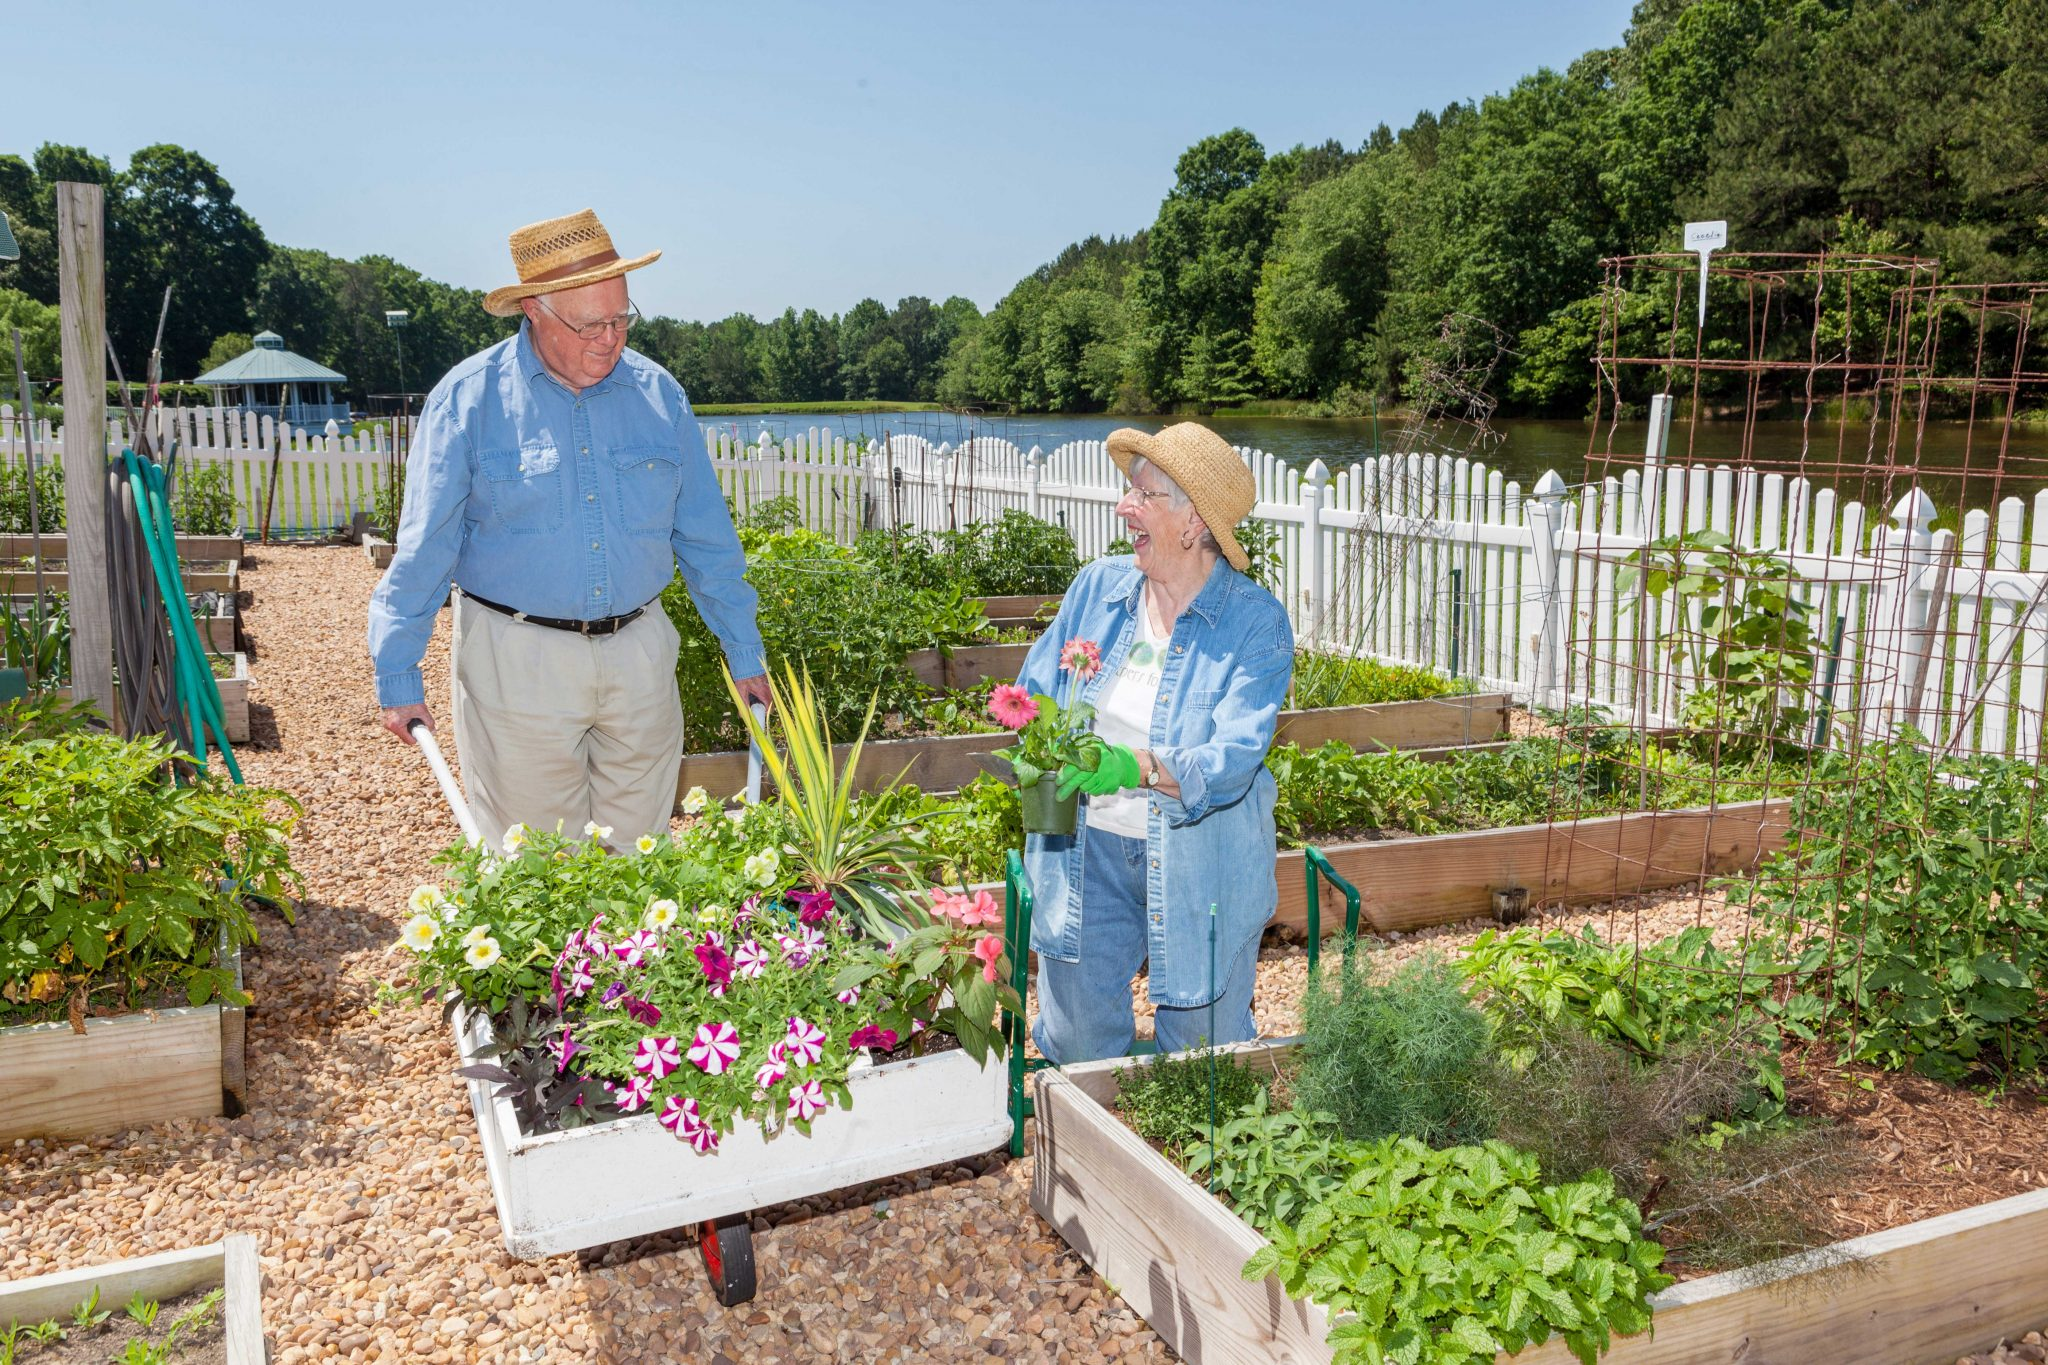 couple-enjoys-gardening